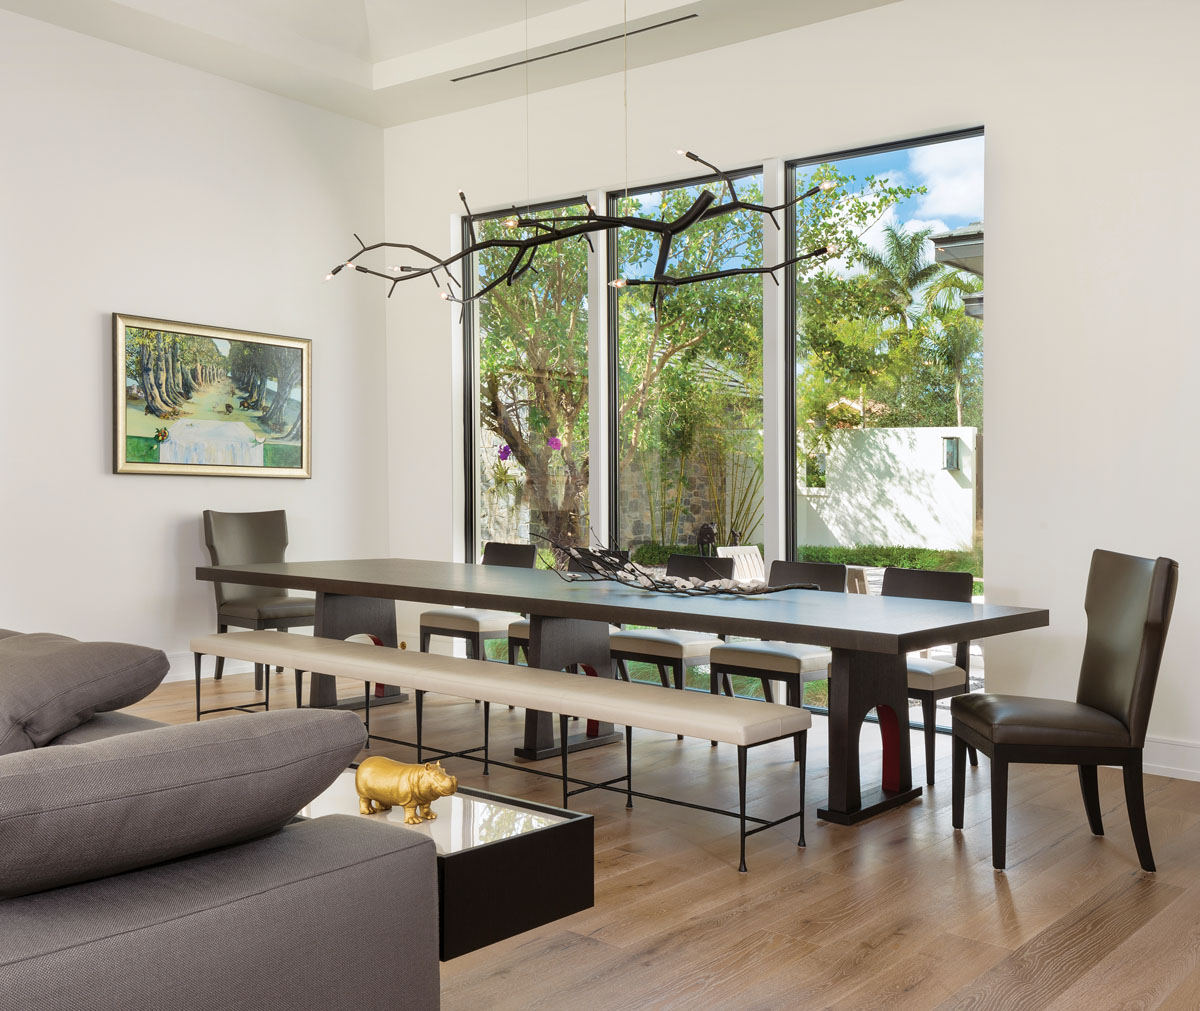 A 12-foot-long Christian Liaigre dining table provides space for large-scale entertaining yet offers intimacy for a small family. The artwork depicting a bucolic scene of a dining table set between a stand of trees was a wedding gift. Hanging overhead, a custom chandelier from CP Lighting suggests a modern reflection of the organic shapes viewed outside the floor-to-ceiling windows.